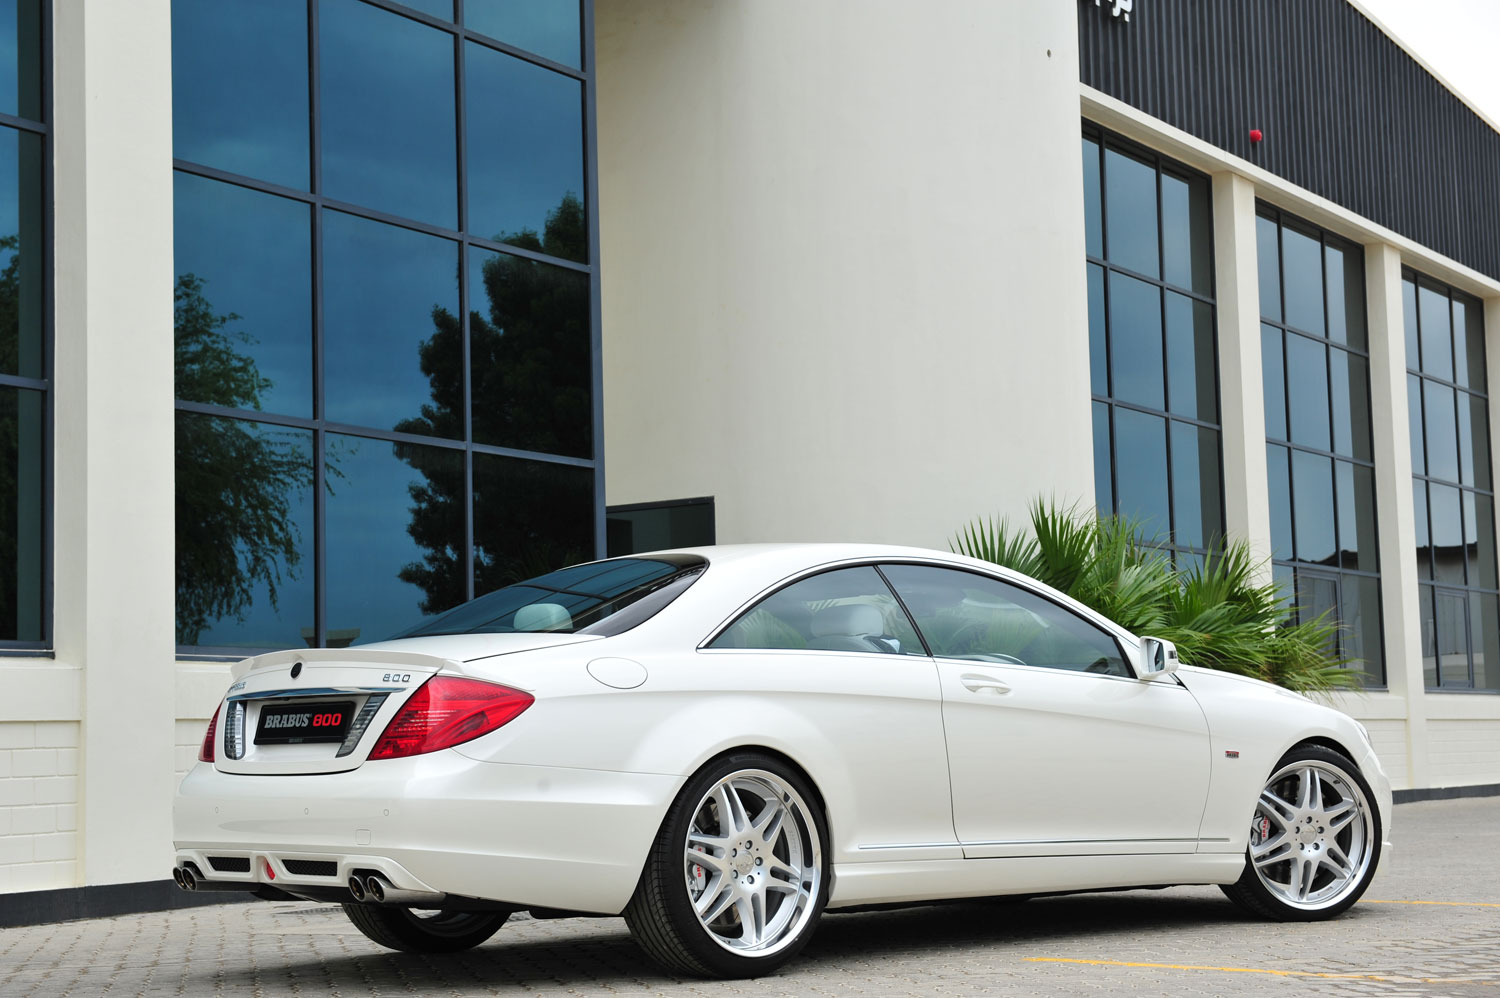 BRABUS 800 Coupe CL600 Rear1